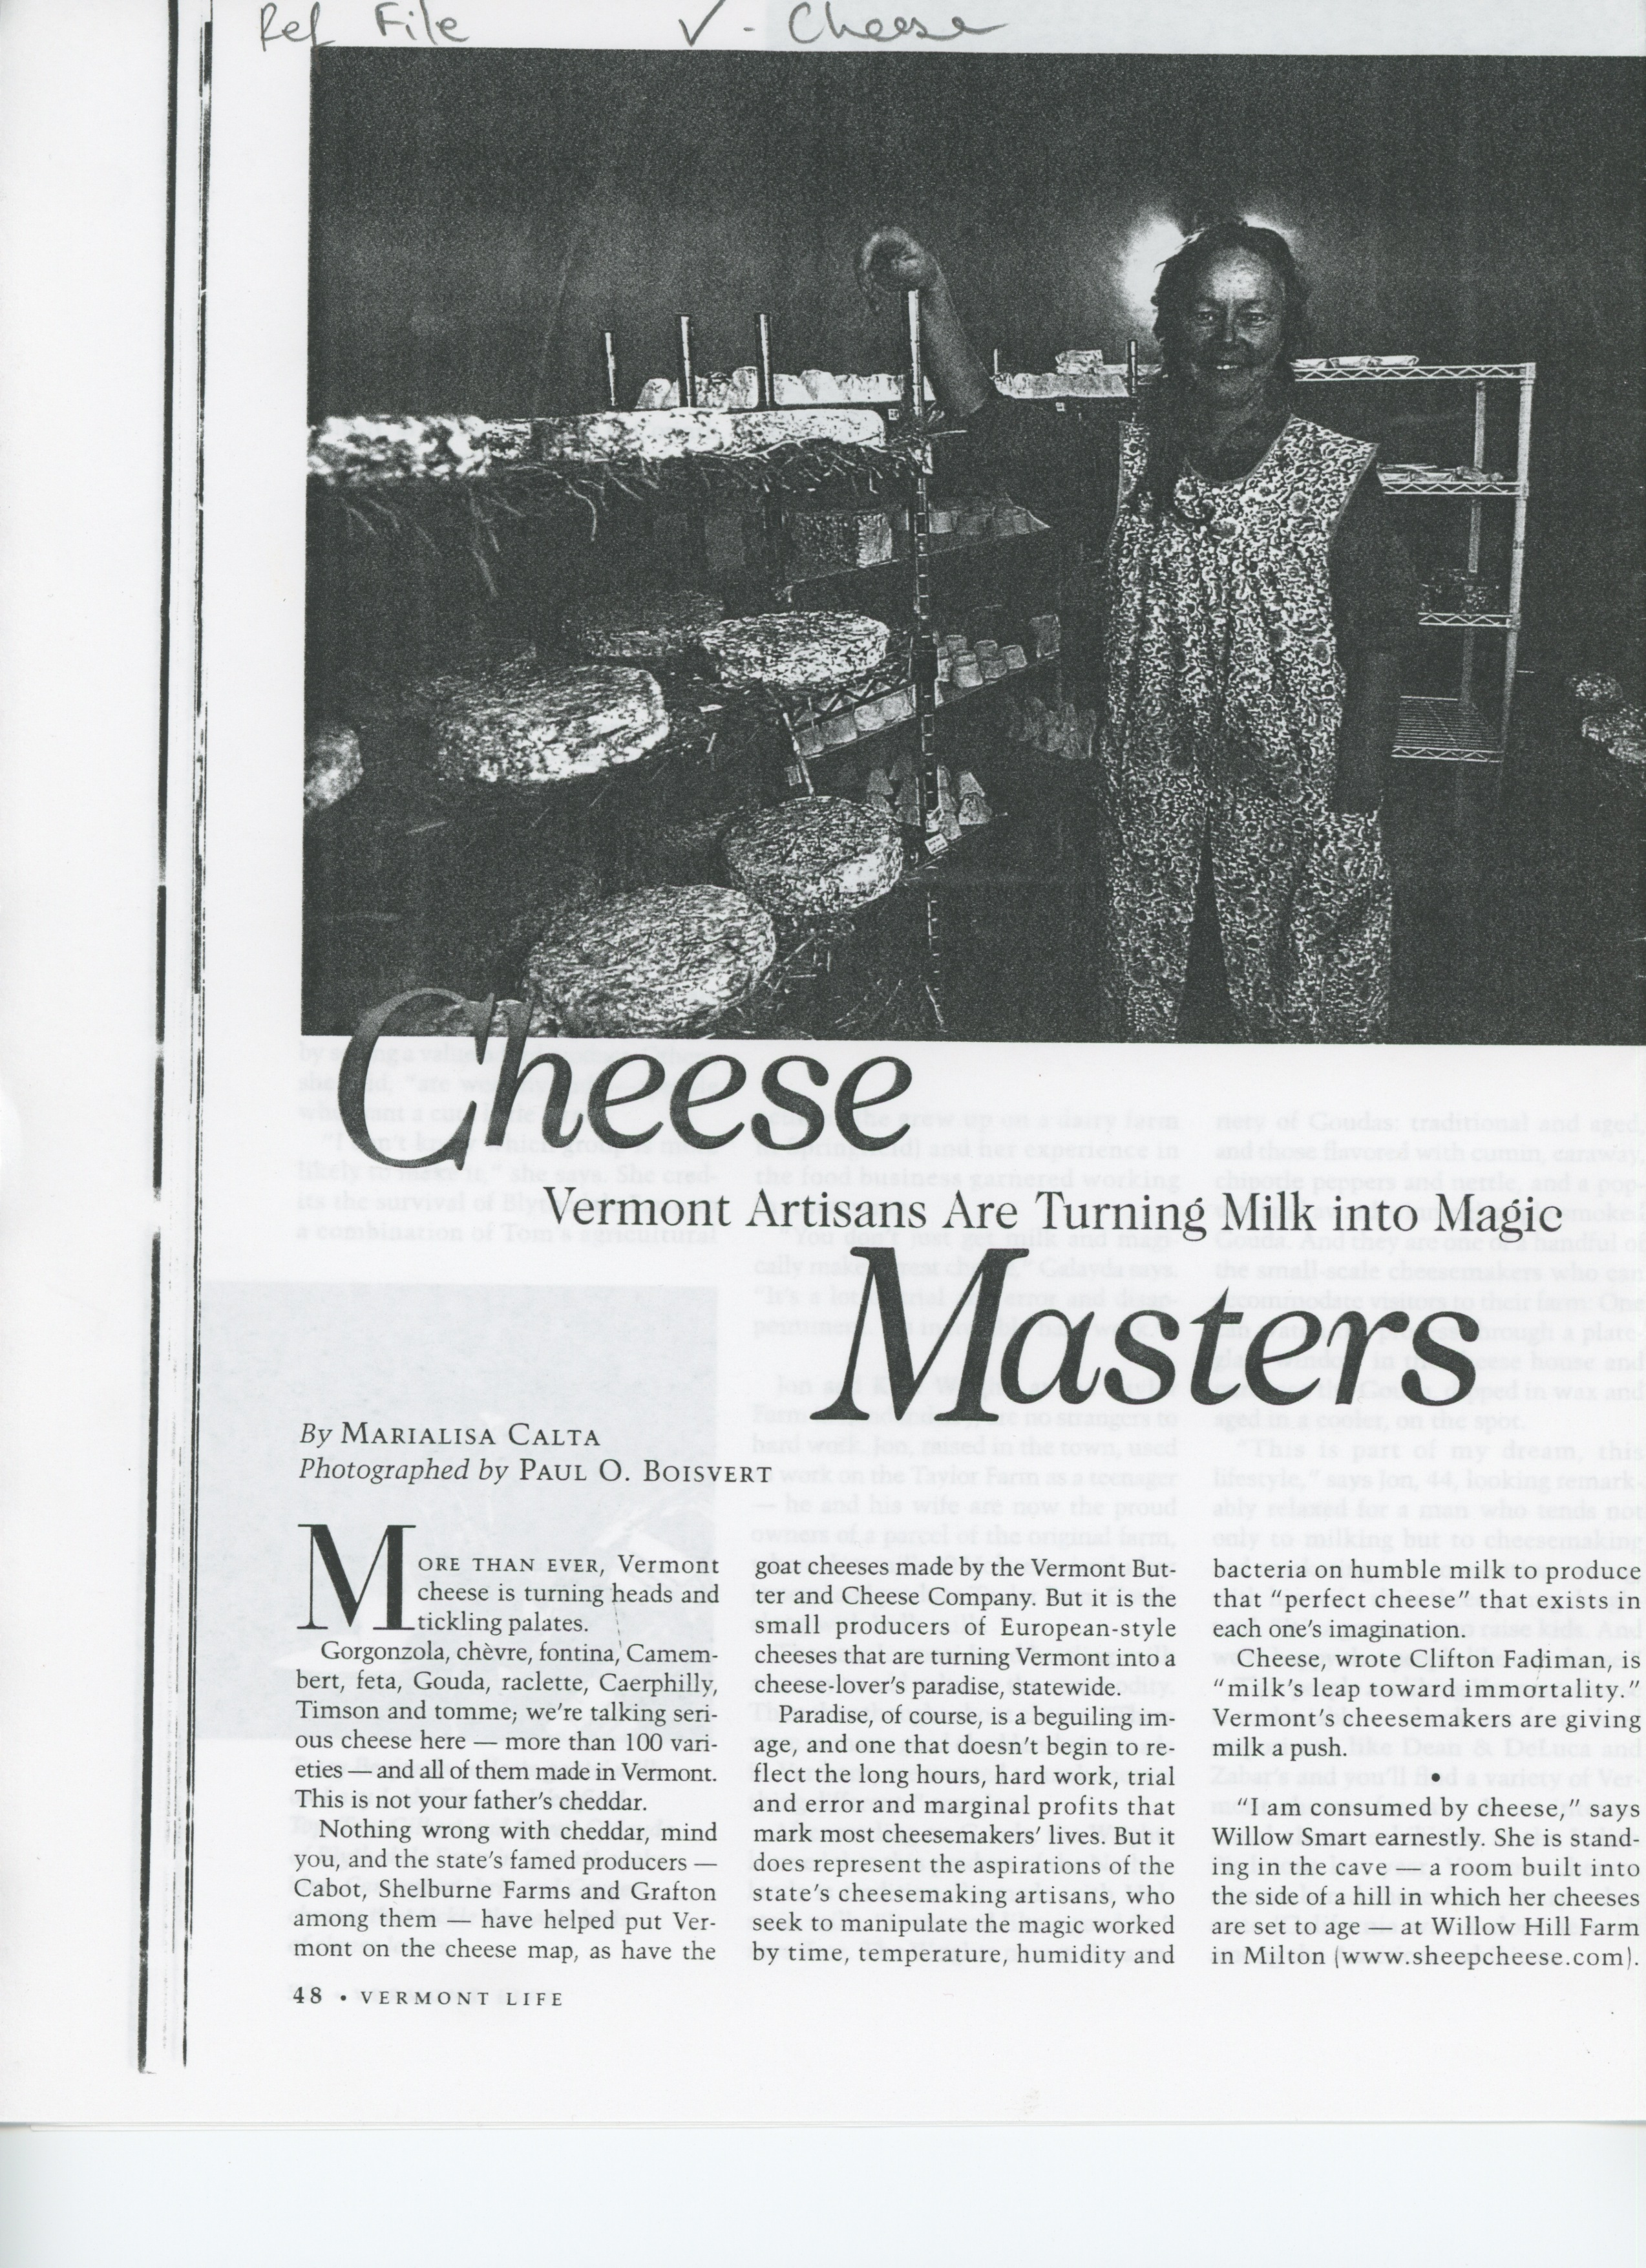 """""""Cheese Masters: Vermont Artisans are Turning Milk into Magic,"""" Vermont Life, by Marialisa Calta, 2002 (PART 1: pgs. 48-9, finish paragraph on pg. 50)"""